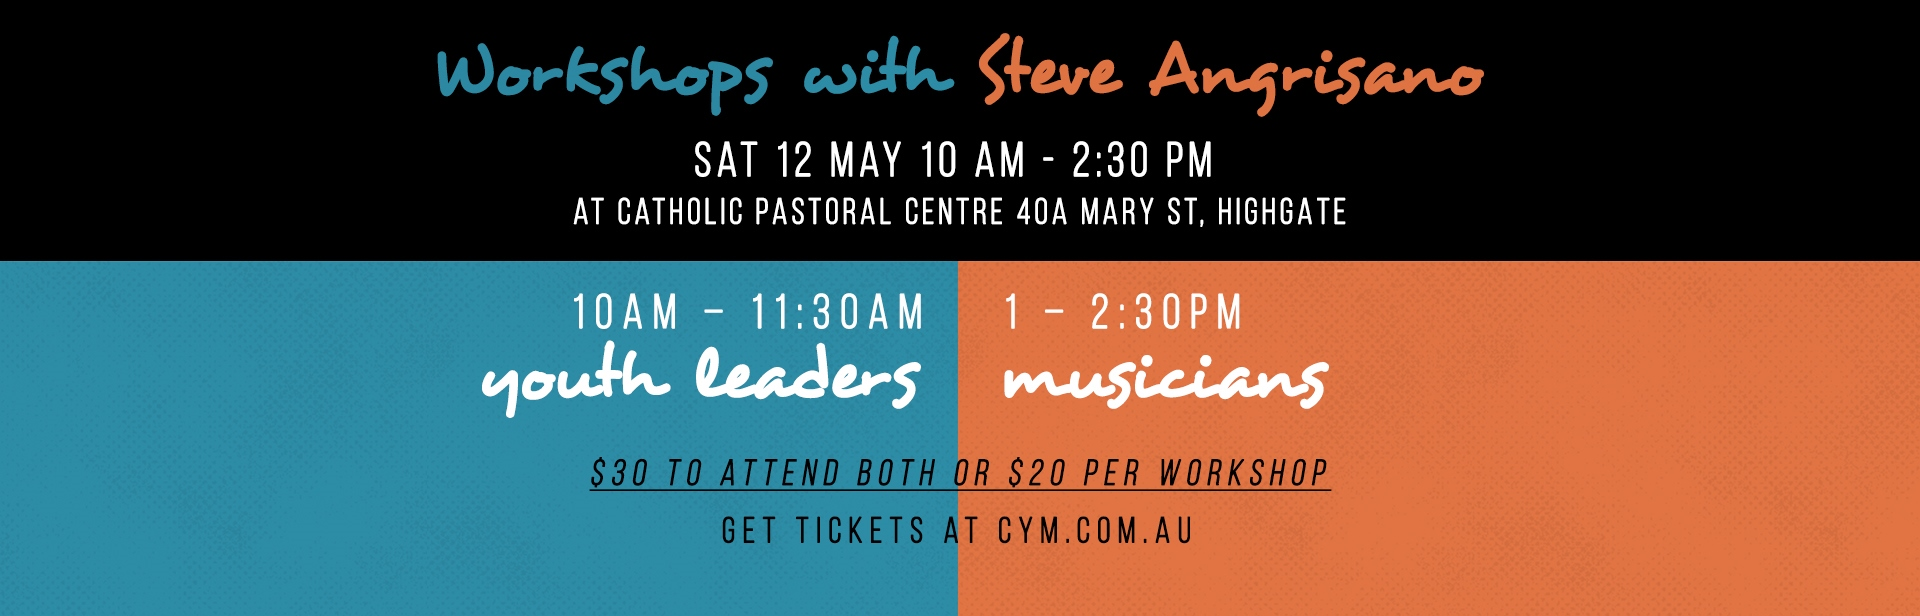 Steve Angrisano - Workshops for Youth Ministers & Musicians